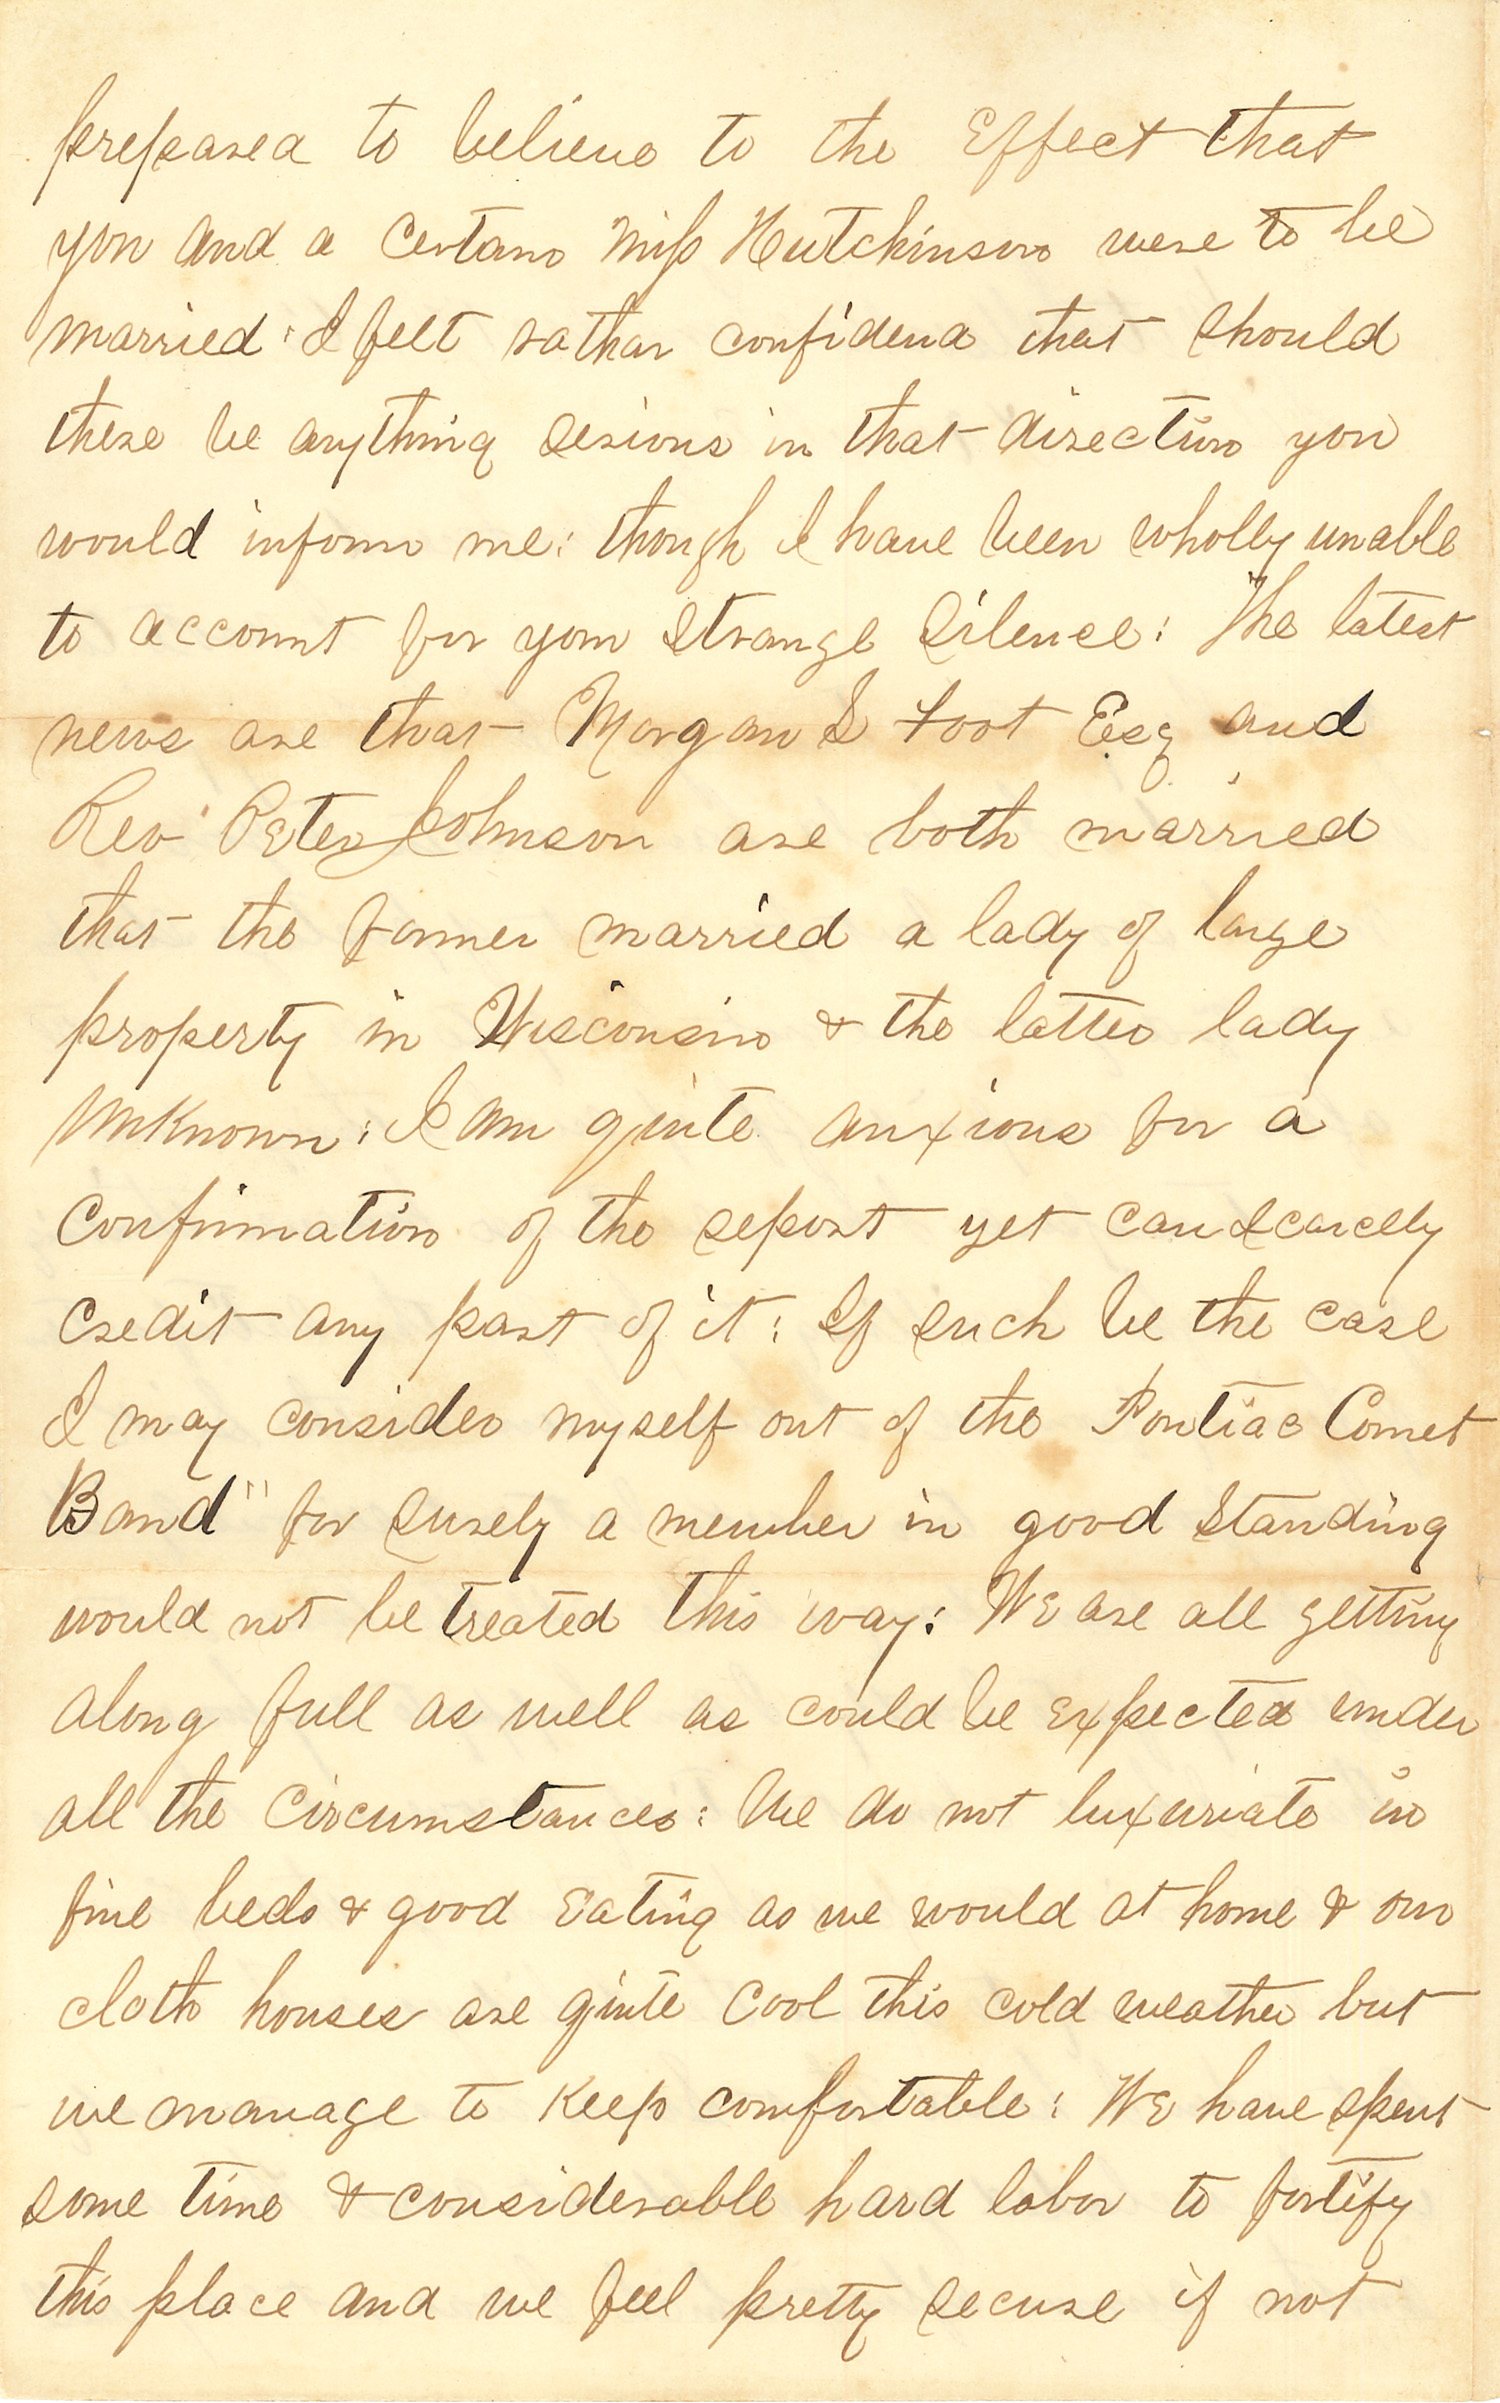 Joseph Culver Letter, December 17, 1862, Page 2